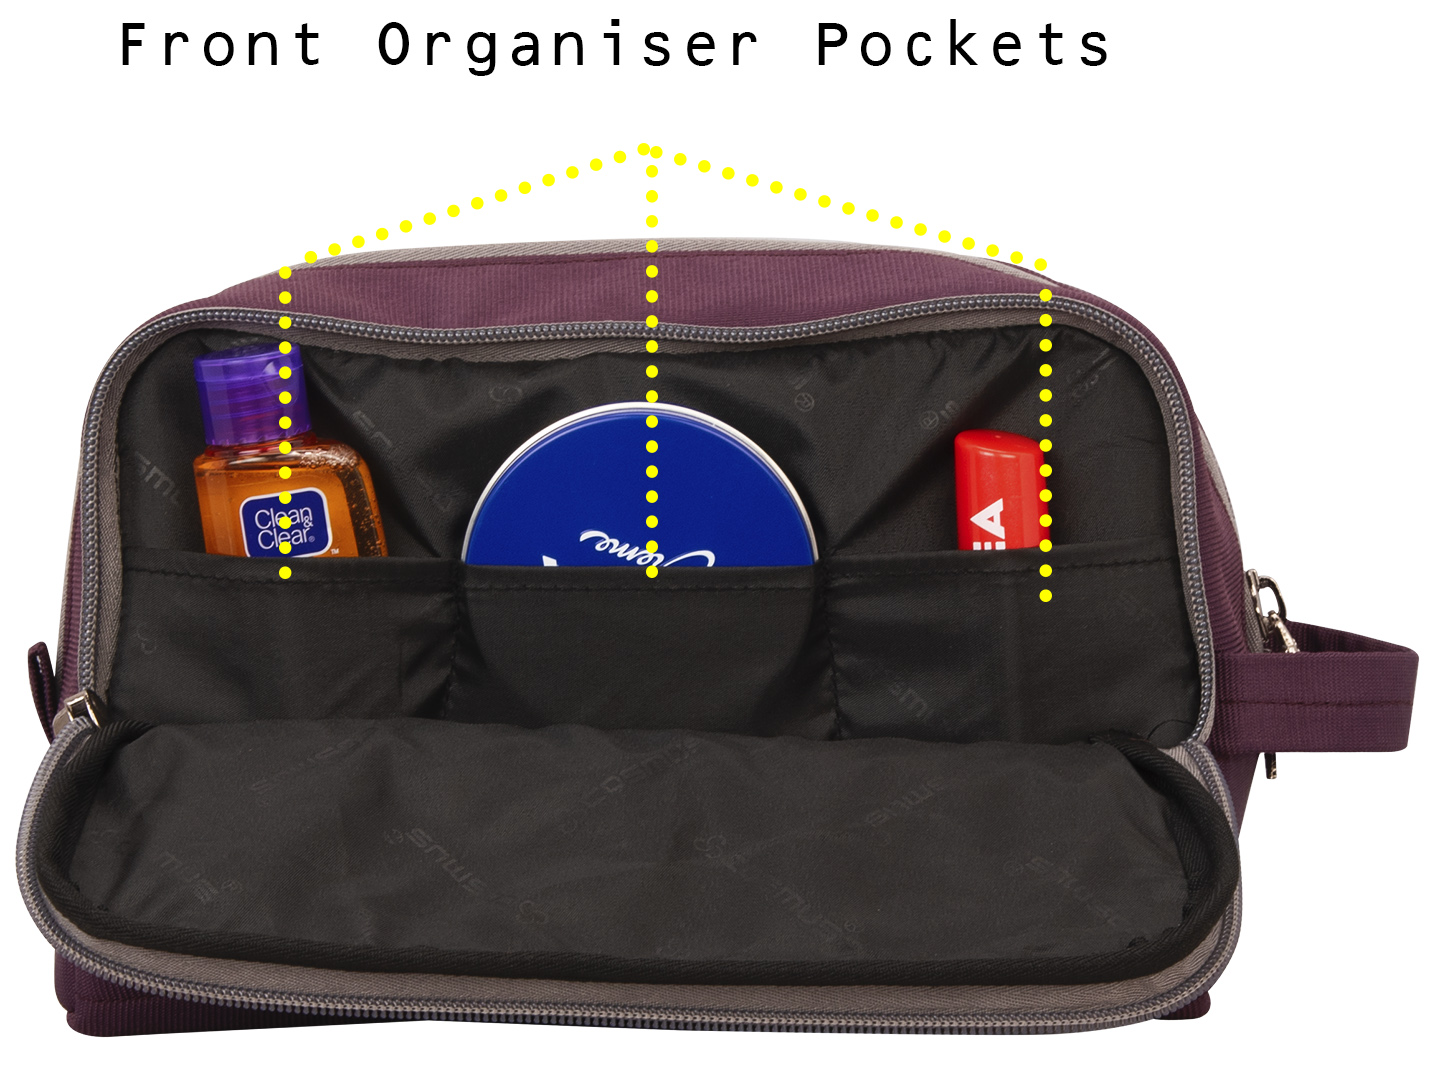 Carryon travel Wine toiletry pouch bag